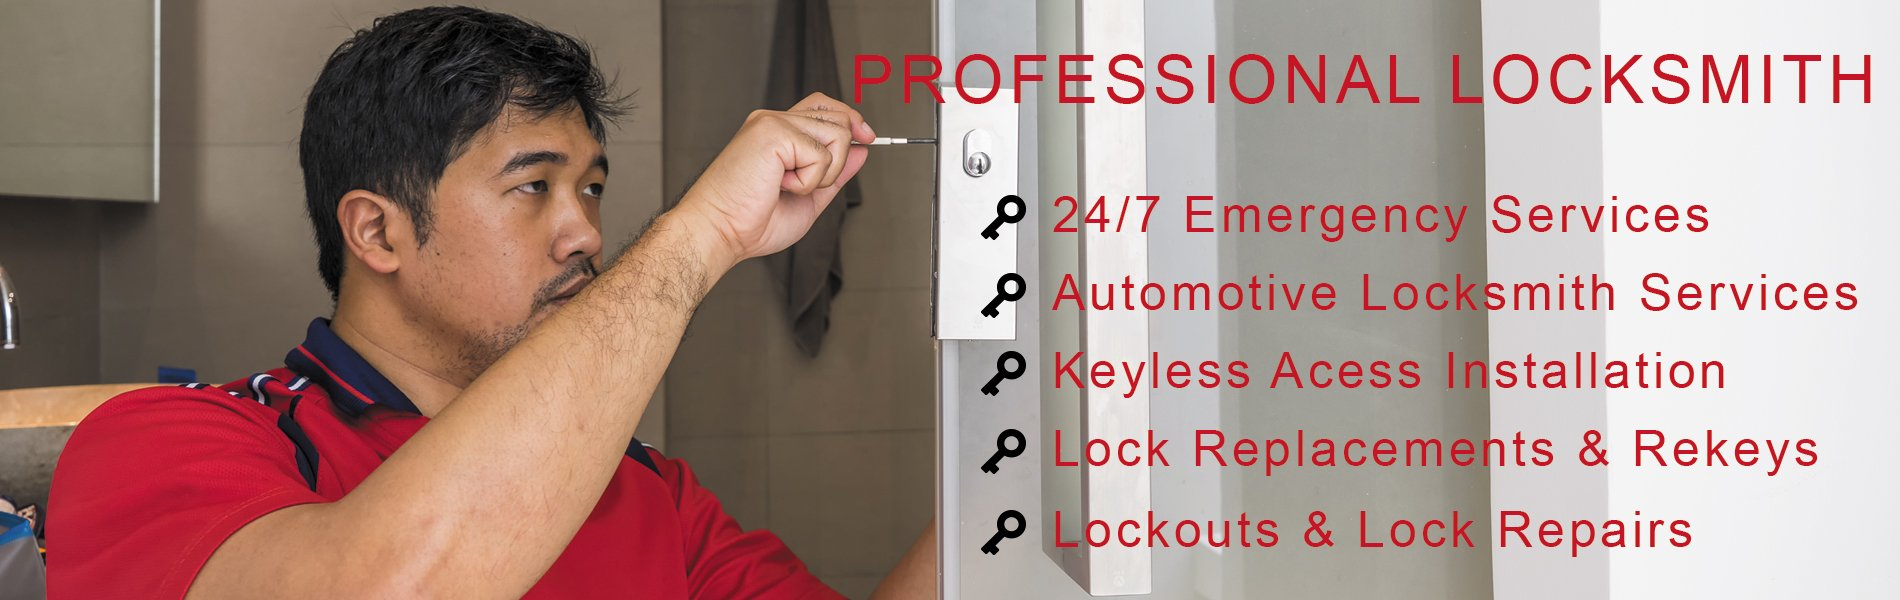 Chester Locksmith Store Chester, VA 804-368-3572